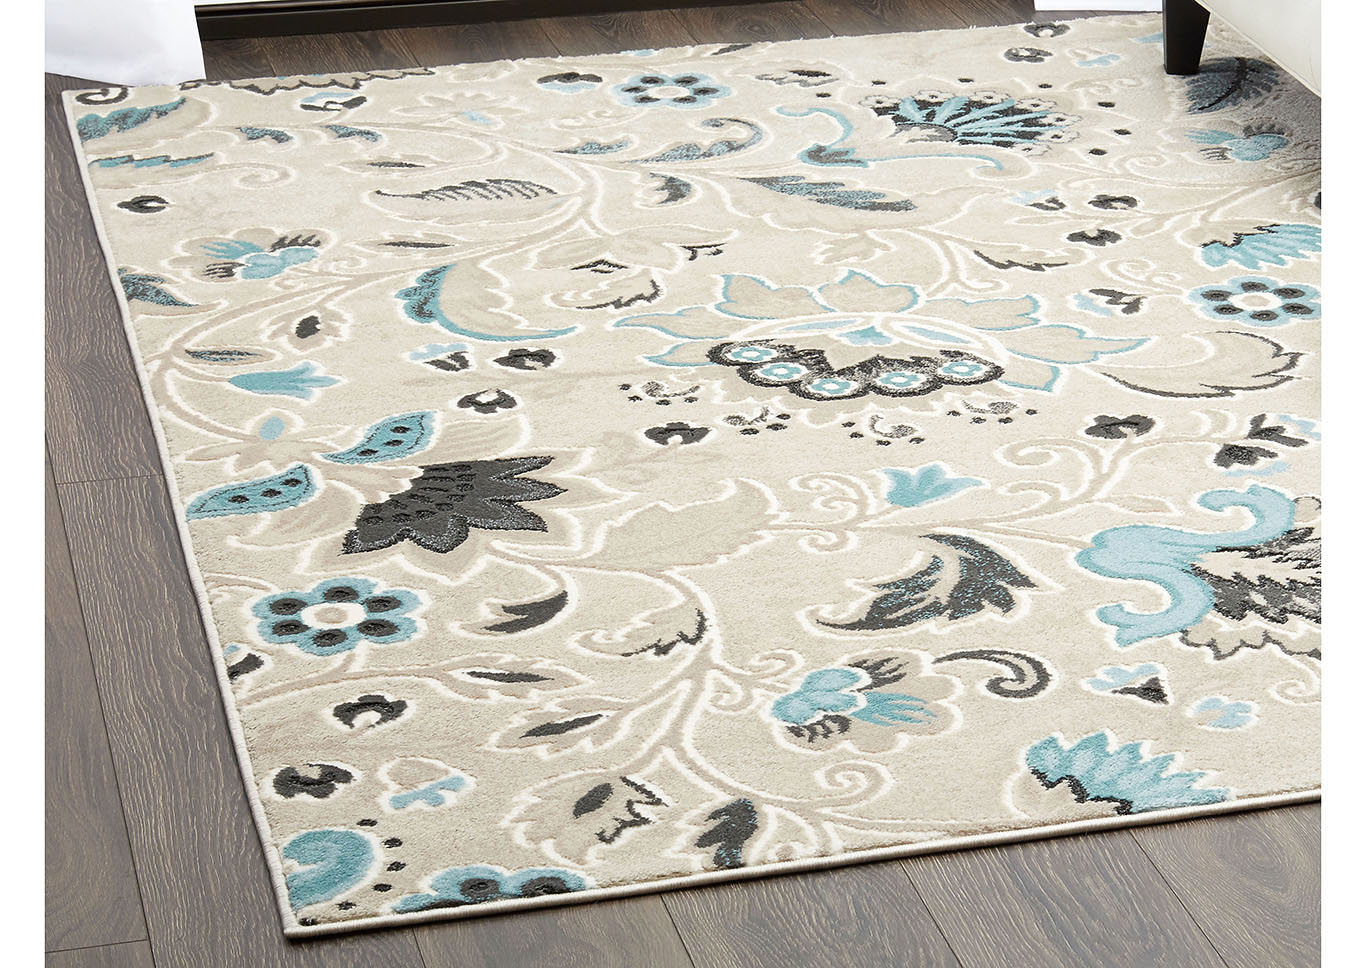 "Home Dynamix Oxford Erie Transitional Area Rug 5'2""x7'2"" Floral Beige/Ivory/Blue,Home Dynamix"